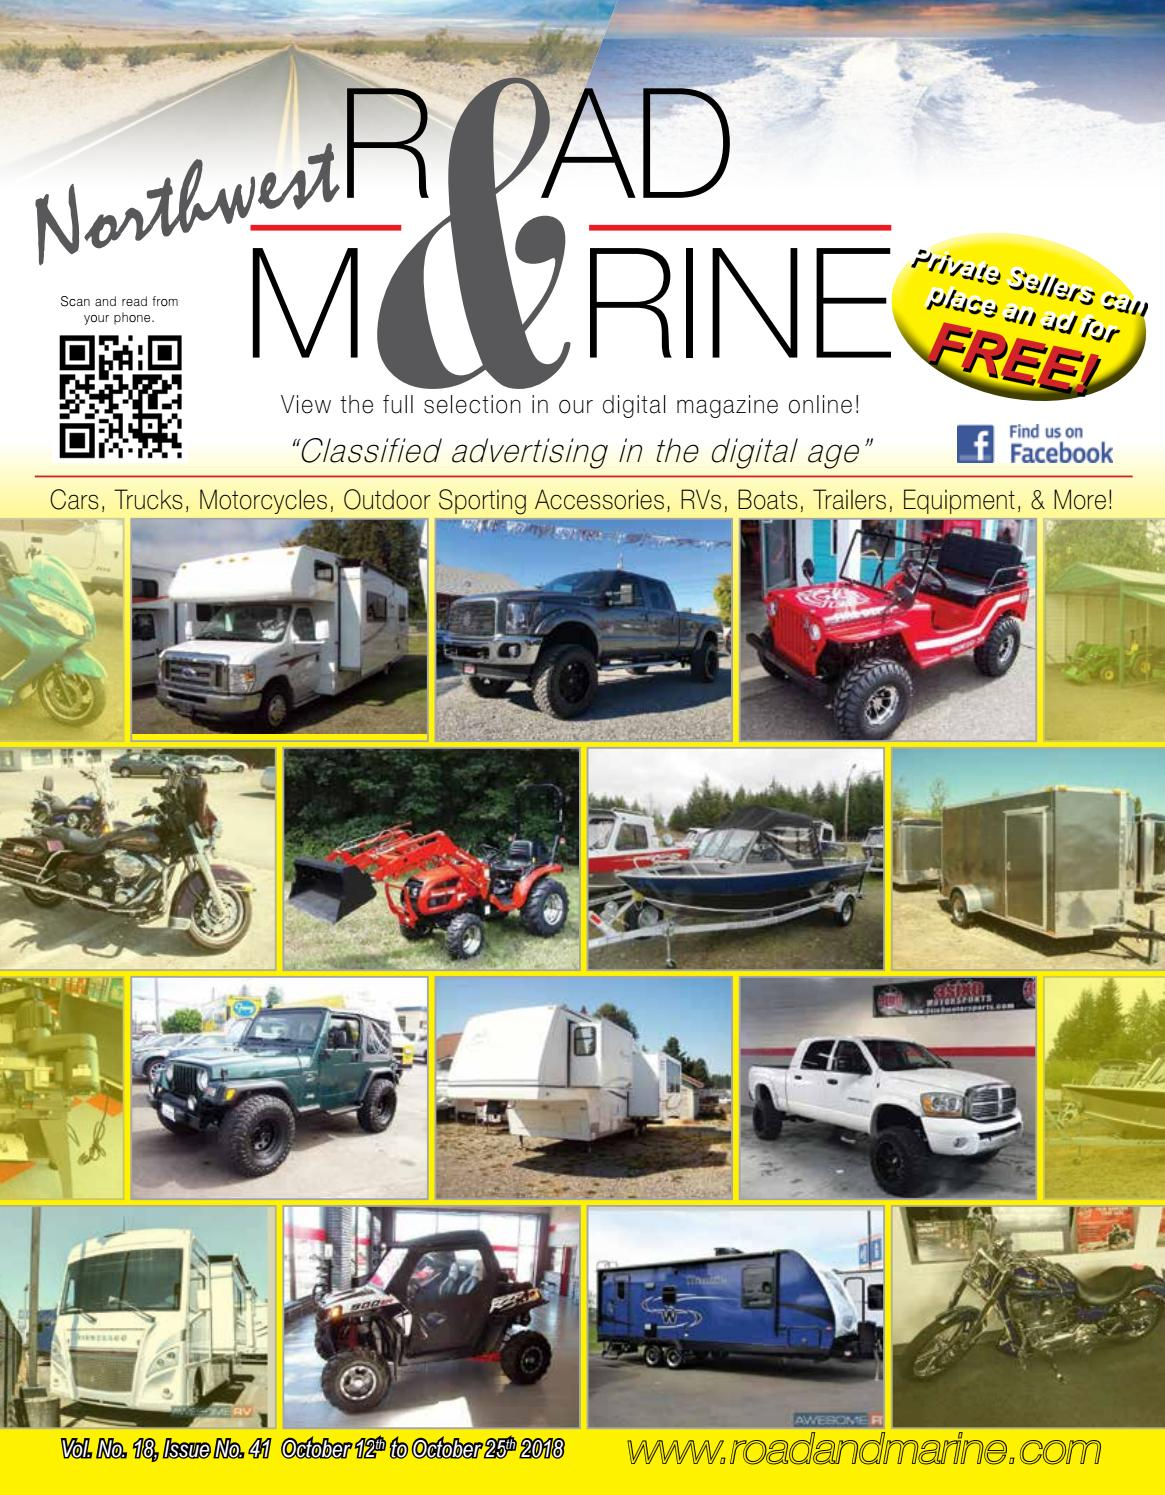 Road and Marine Magazine Vol 18 #41 by Road & Marine